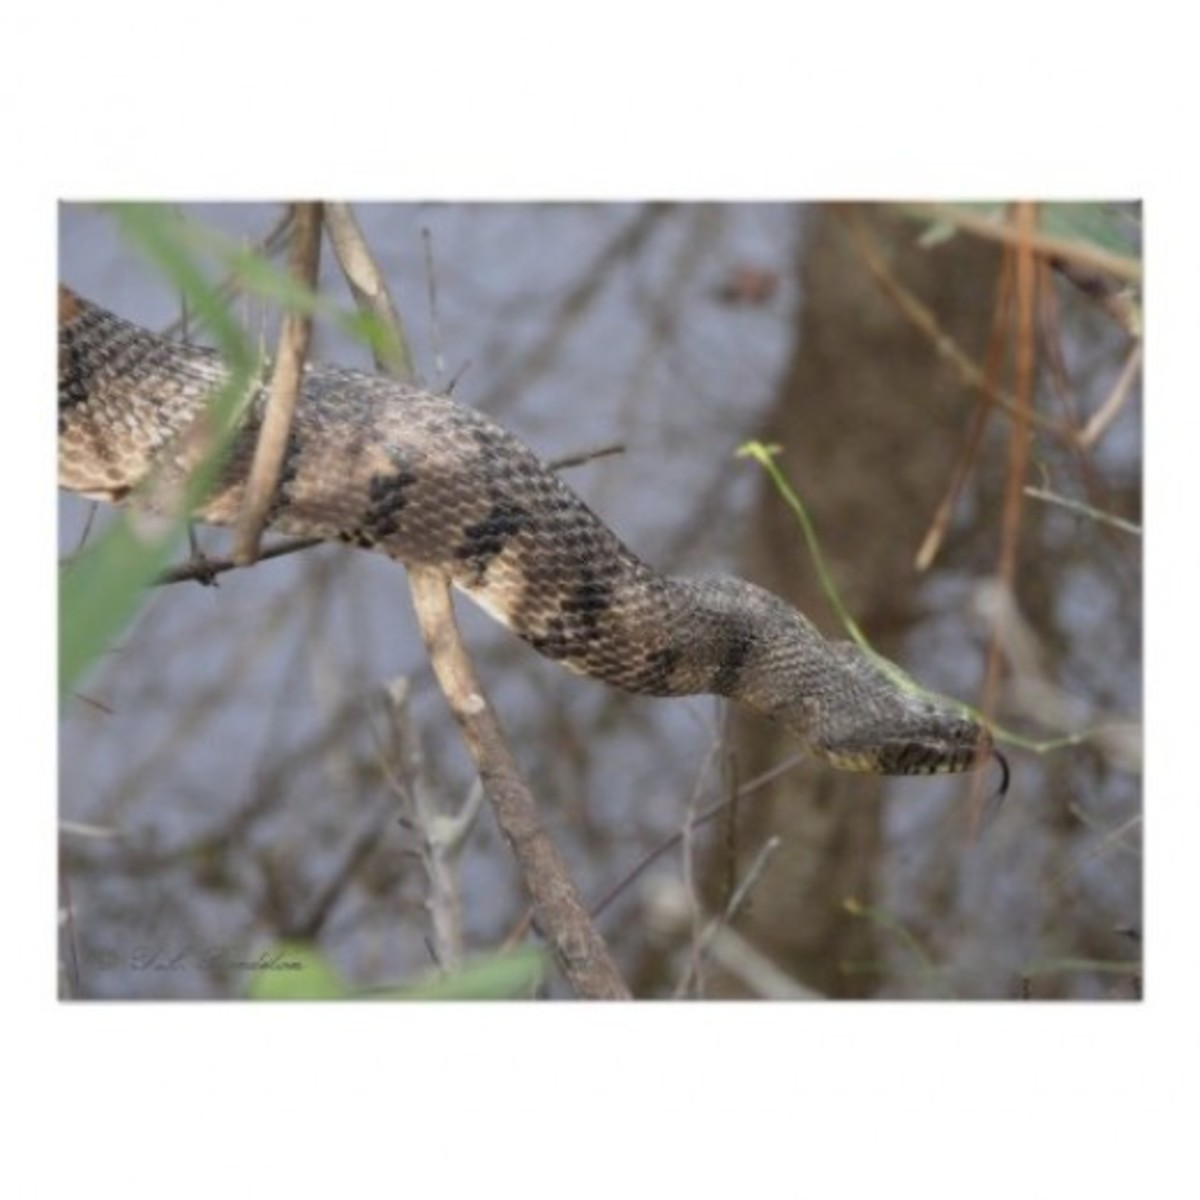 Diamond back watersnake testing the air with its tongue in early spring by naturegirl7 on Zazzle.